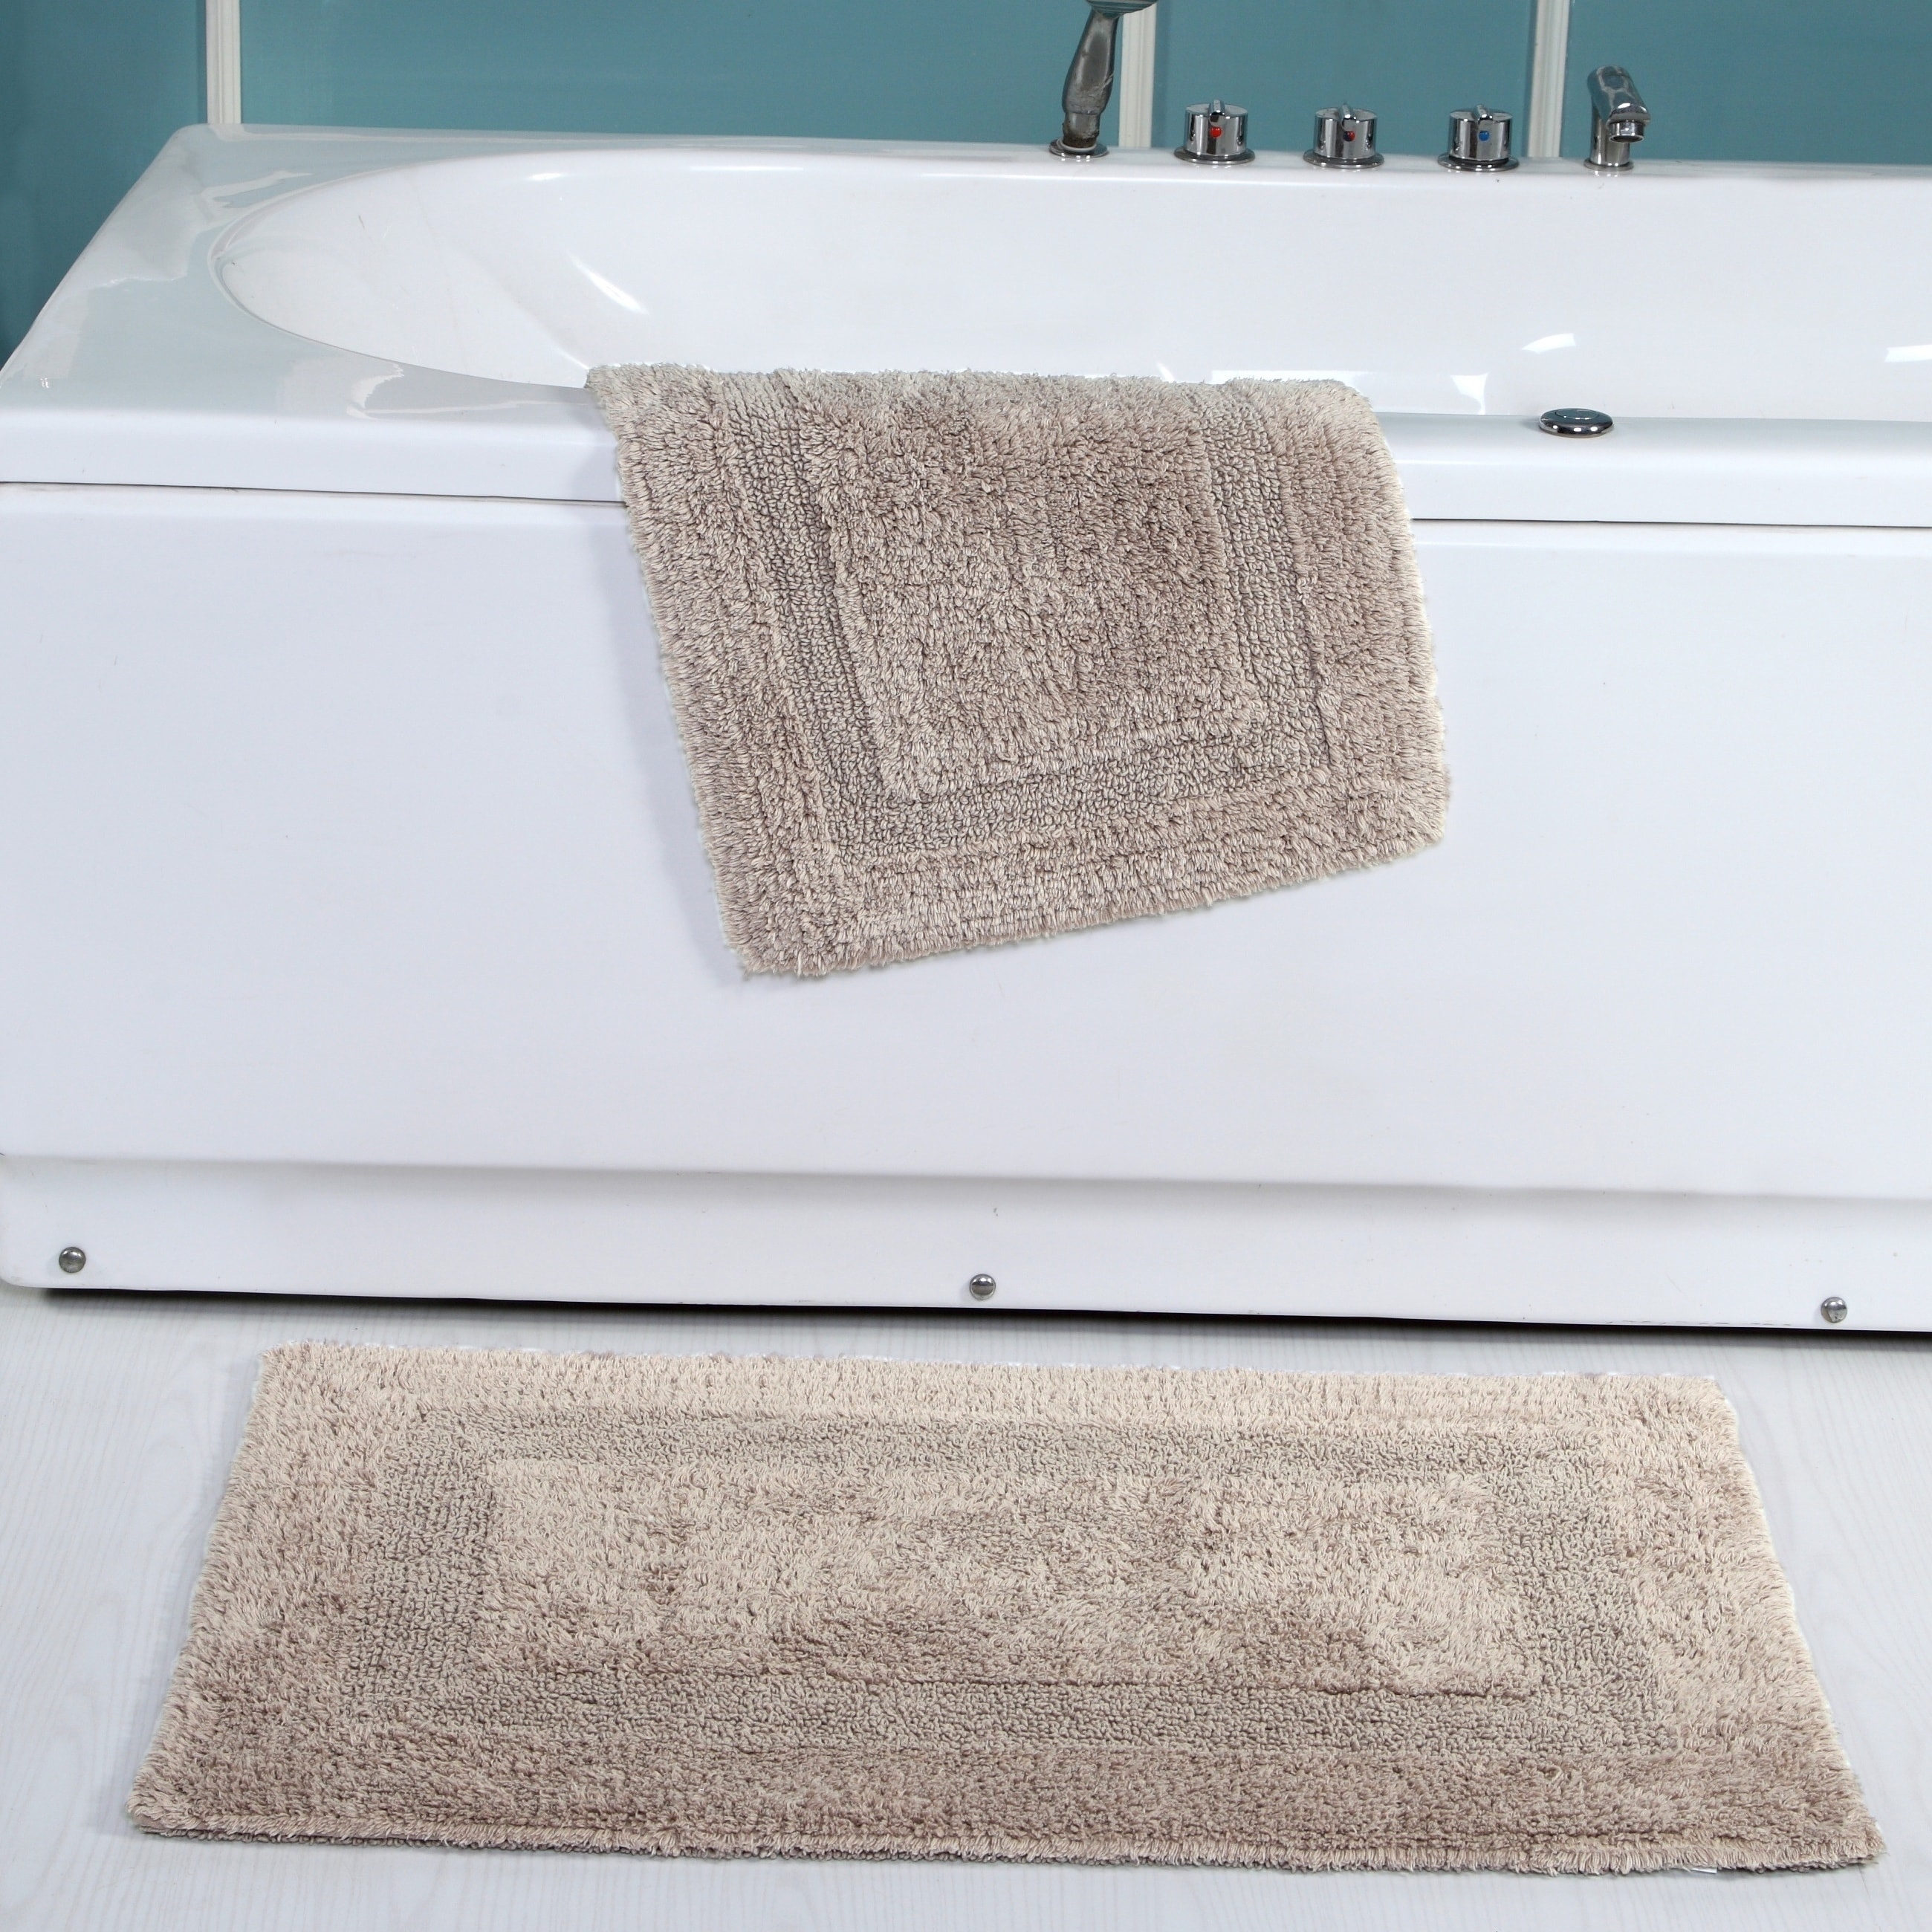 2 Piece Reversible Bath Rugs Free Shipping On Orders Over 45 25522621